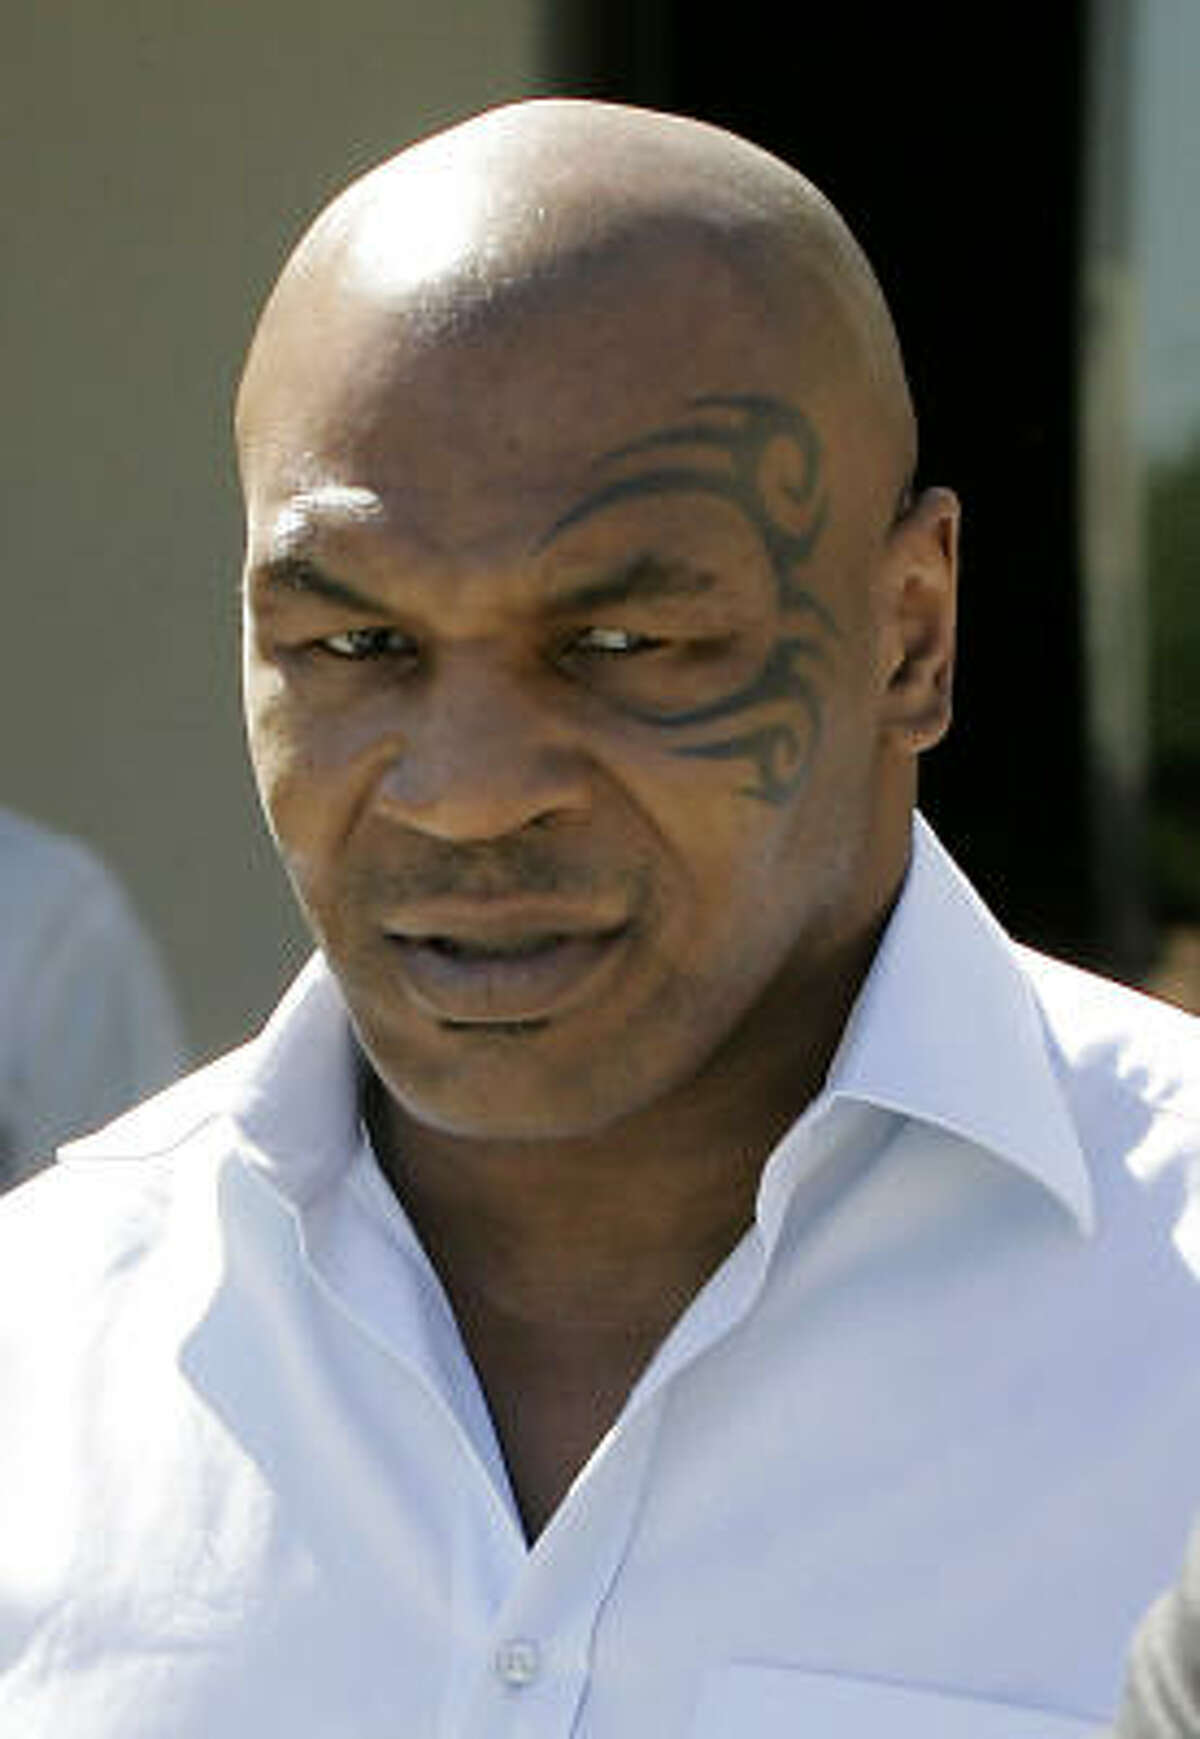 Mike Tyson, former boxer His permanent mask says it all. Be careful, because candy isn't the only thing he might take a bite out of.